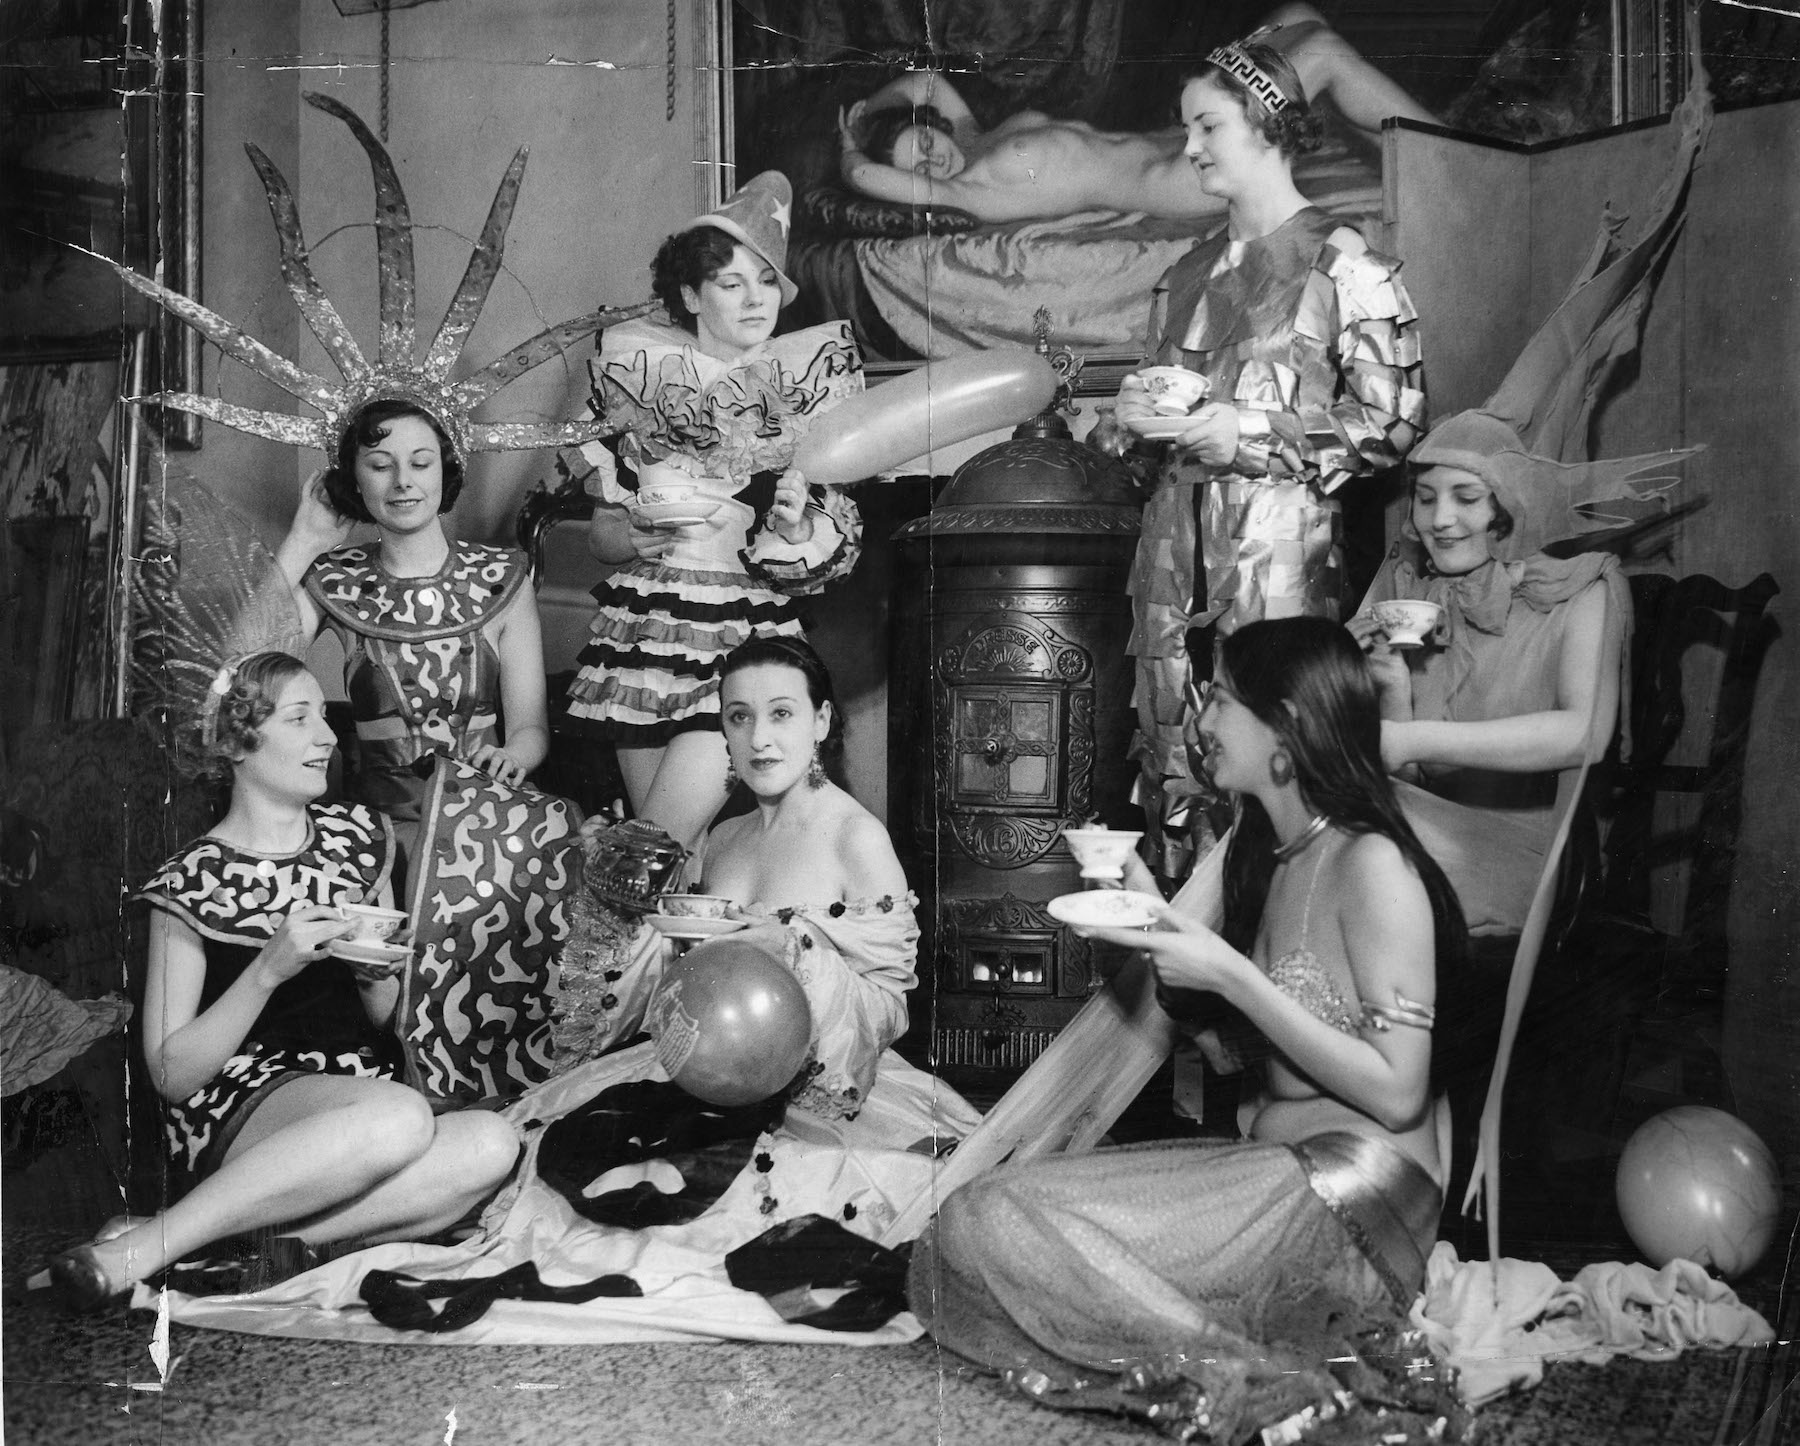 Chelsea Arts Ball Girls In Costume Take A Break For Refreshments During Rehearsals. The Albert Hall New Year's Eve.